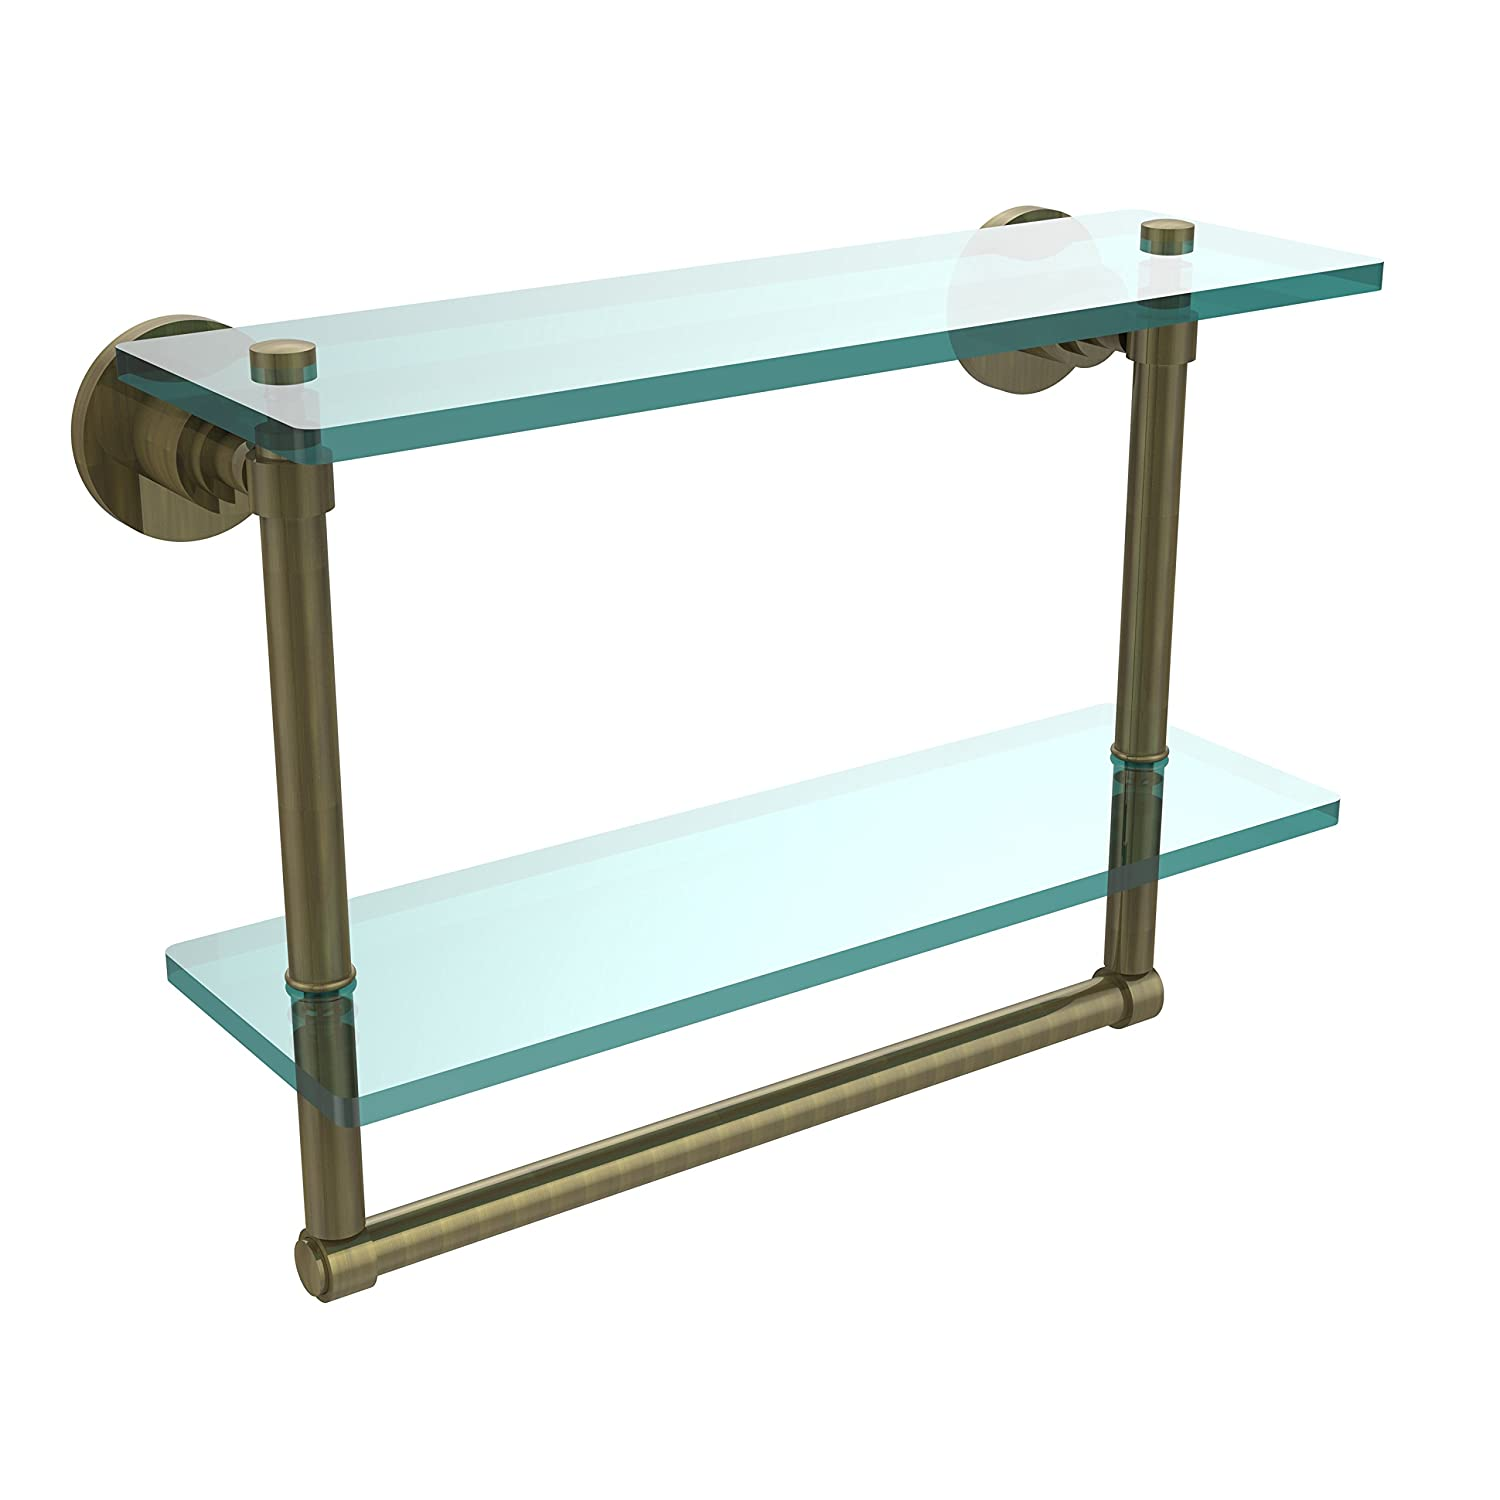 Allied Brass WS-2TB/16-ABR 16-Inch Double Glass Shelf with Towel Bar by Allied Brass B001O85G56アンティーク真鍮 16 in.